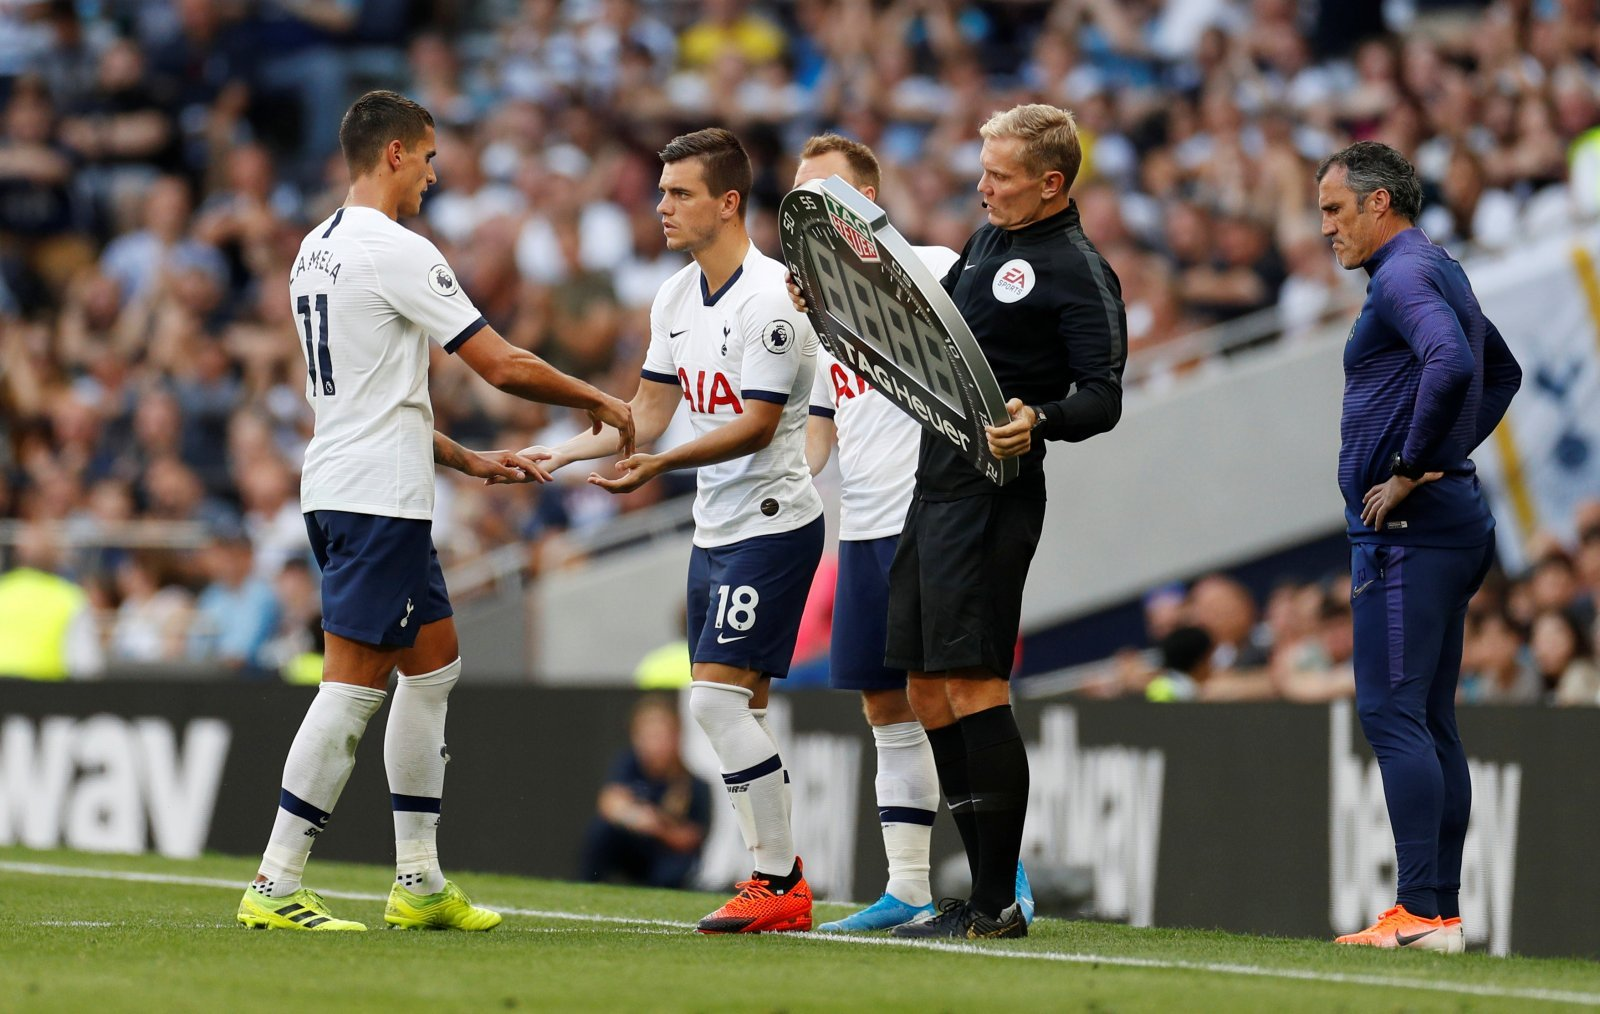 Tottenham Hotspur: Giovani Lo Celso back in the matchday squad for tie against Red Star Belgrade